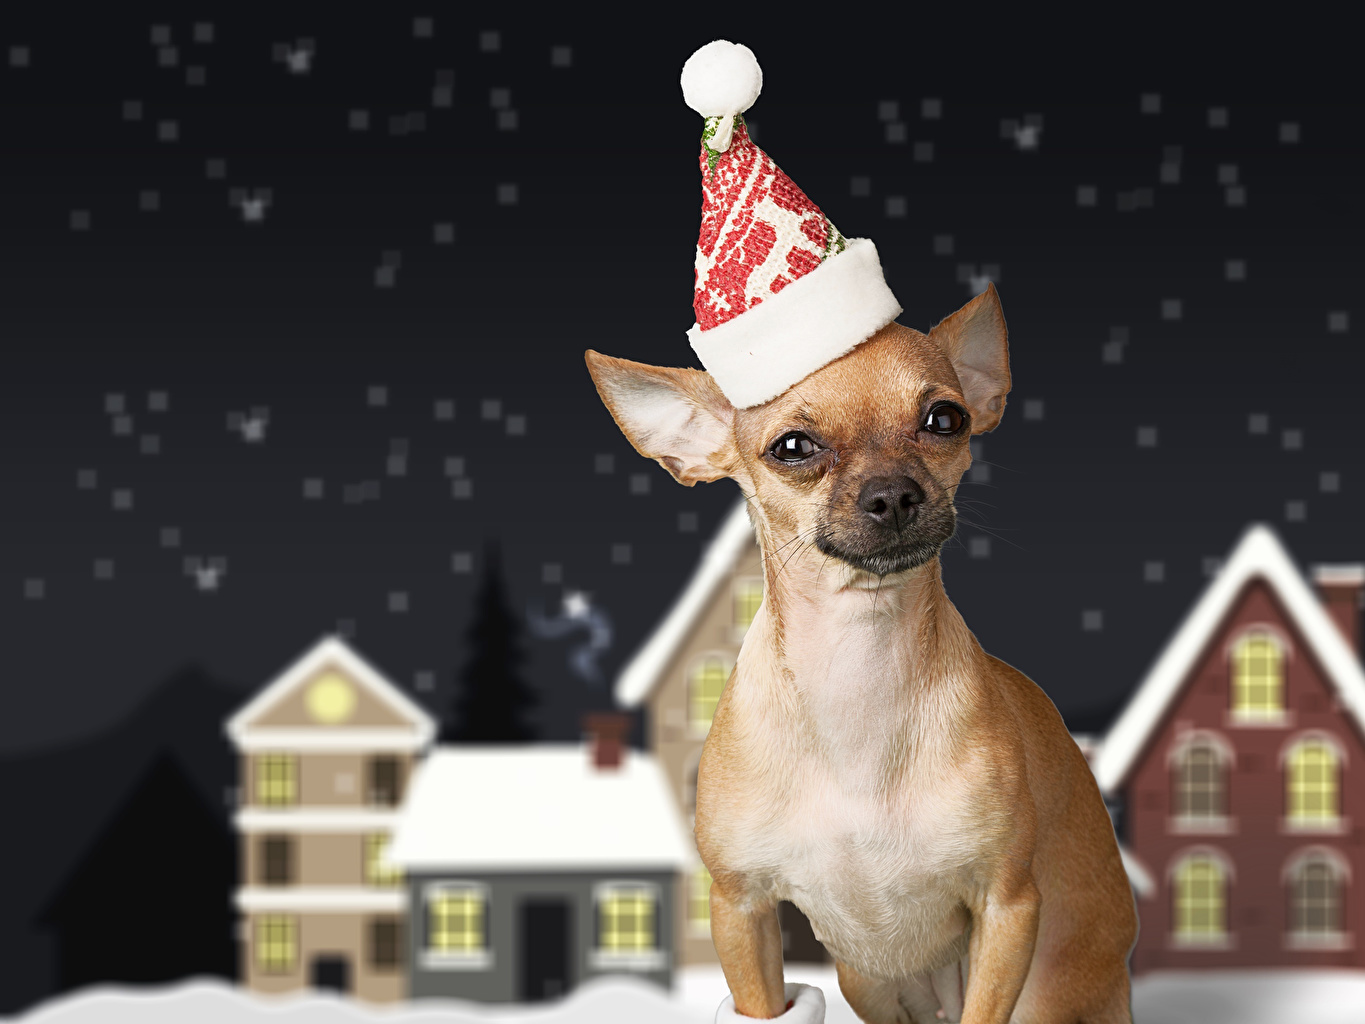 Weihnachtsbilder Smartphone.Pictures Chihuahua Dog New Year Winter Hat Animal